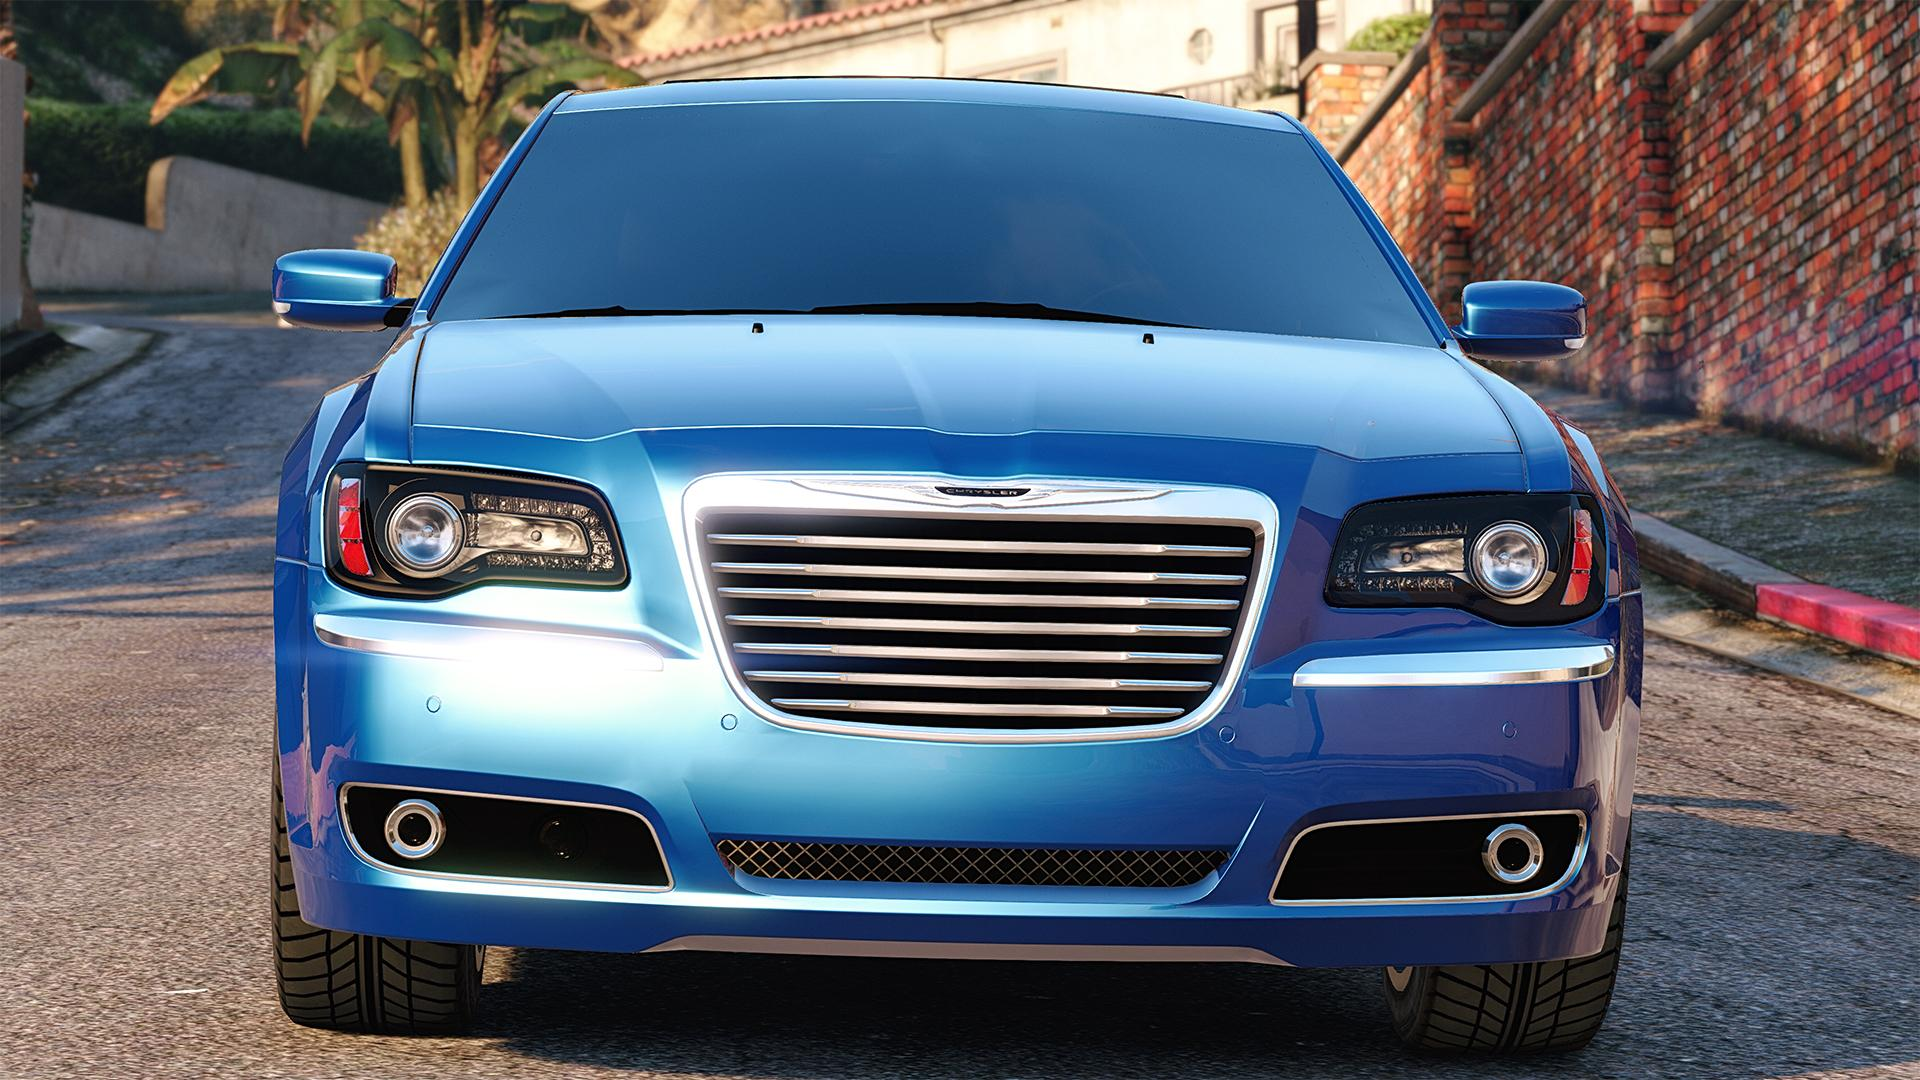 2012 Chrysler 300 Srt8 Add On Replace Tuning Gta5